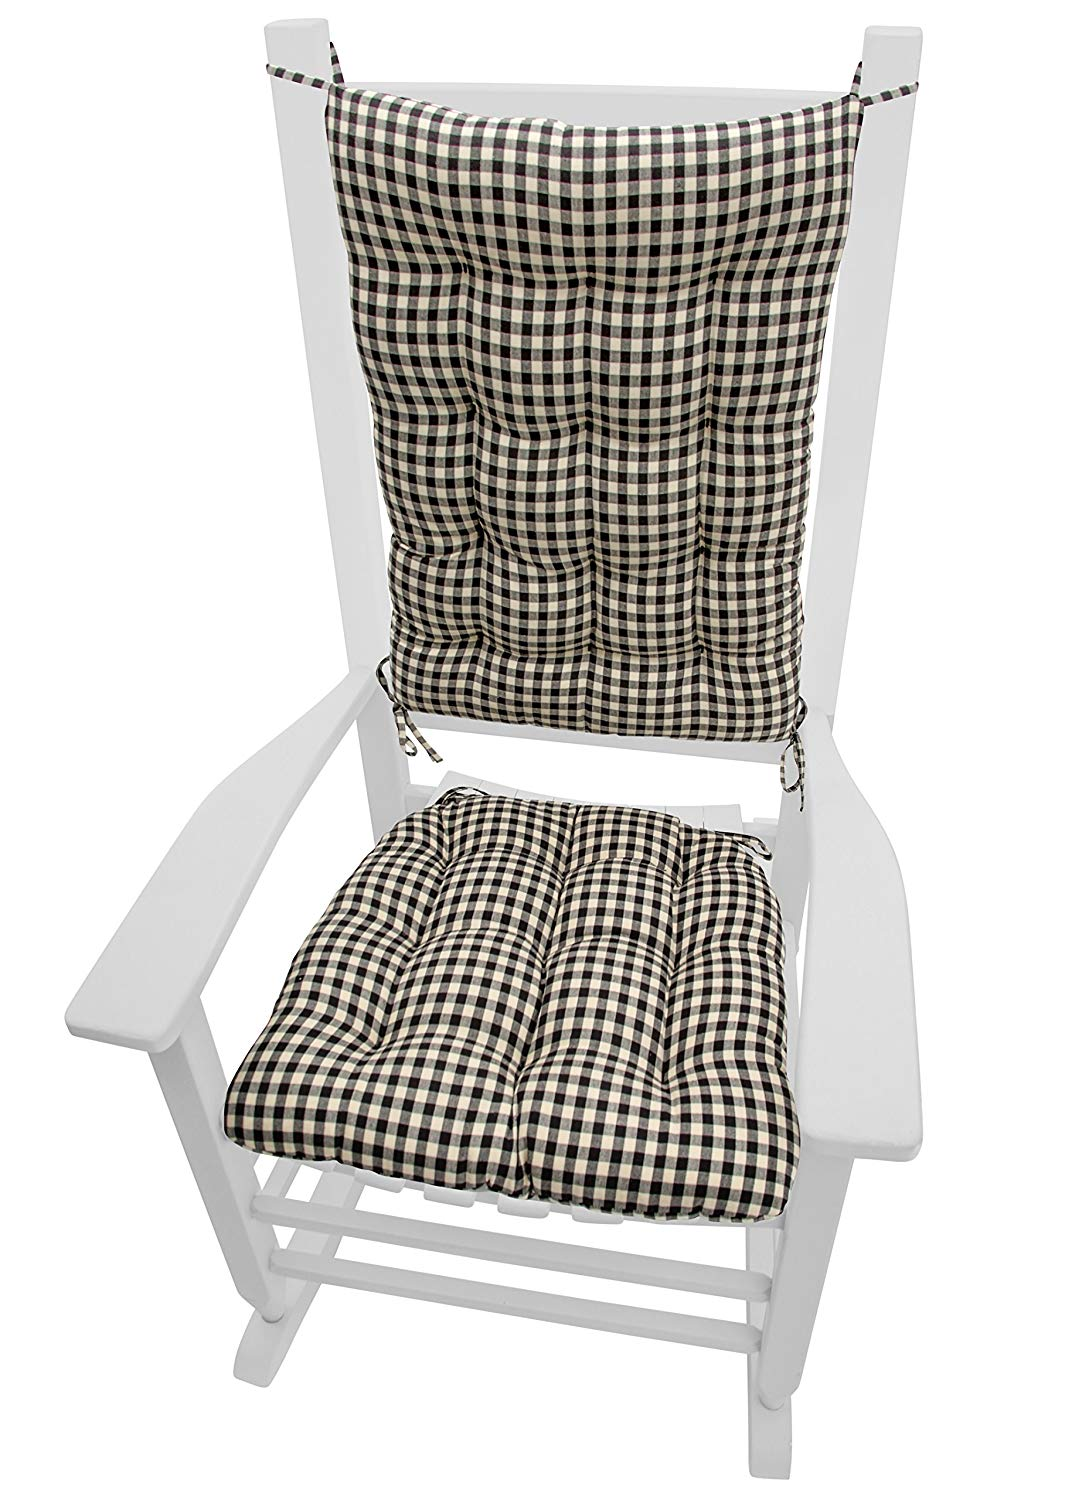 amazon.com: barnett products rocking chair cushions - checkers black u0026 DOKSASG